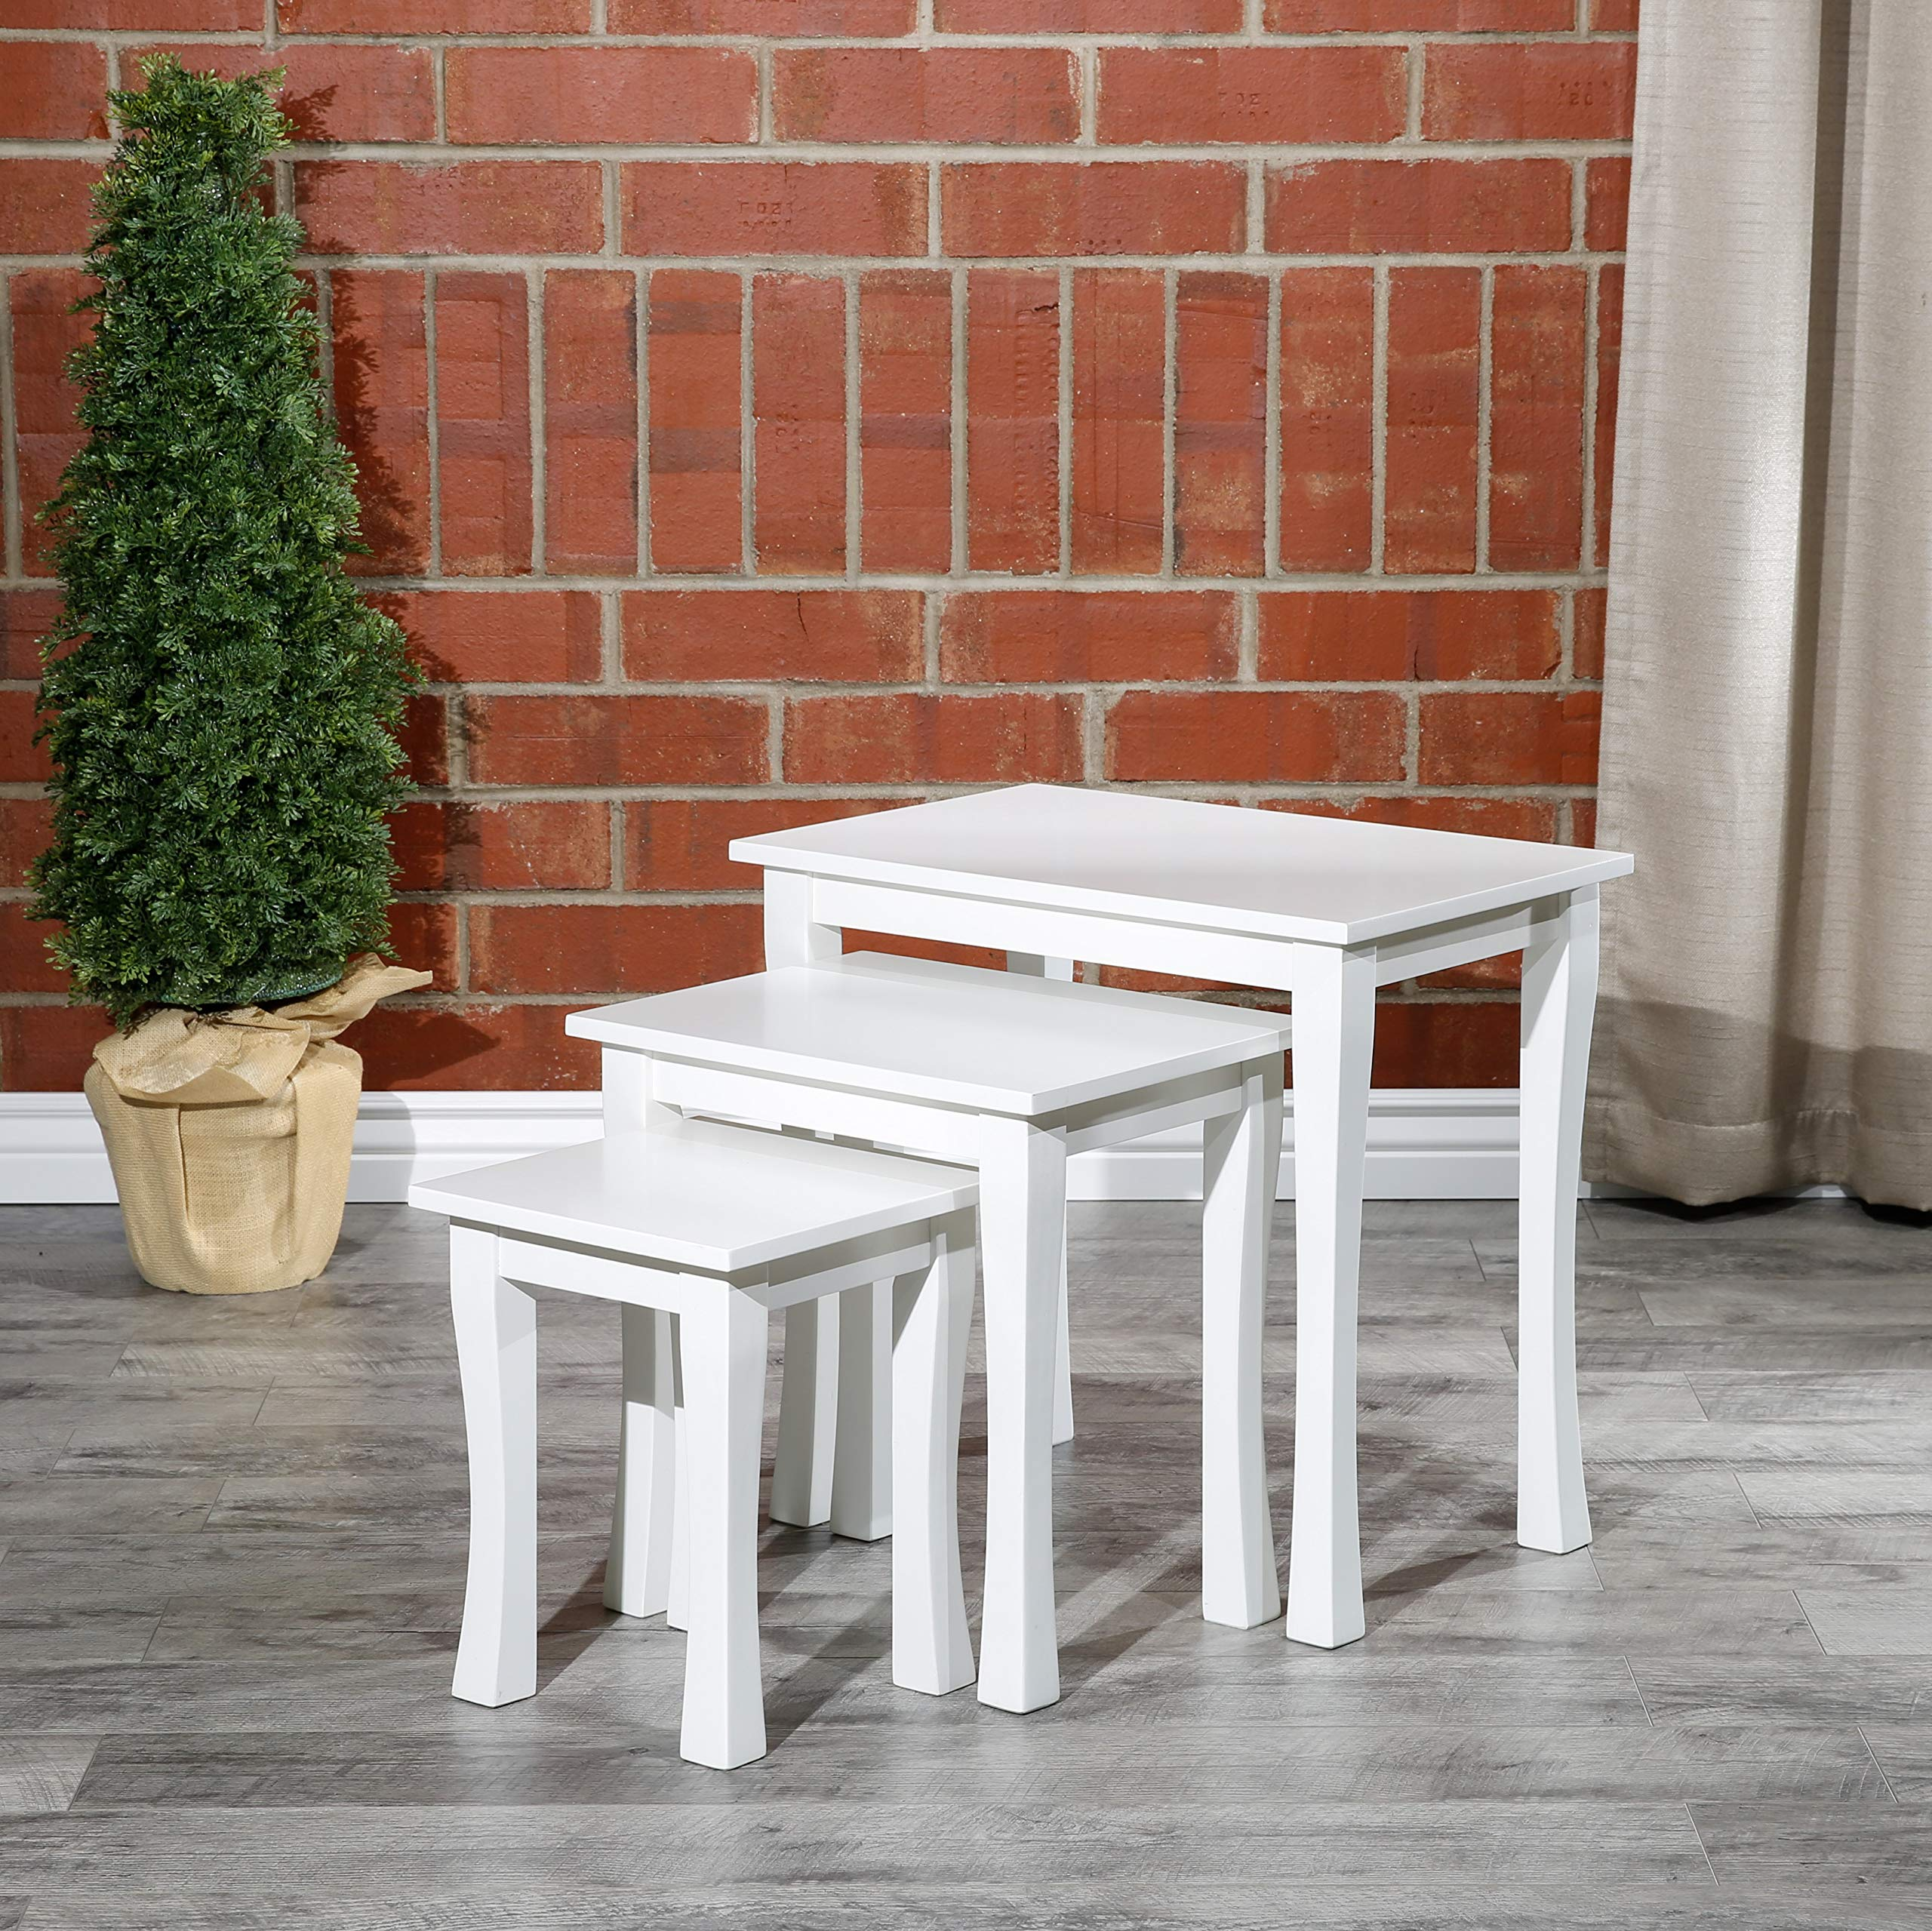 DTY Indoor Living Boulder 3-Piece Nesting Table Collection by DTY